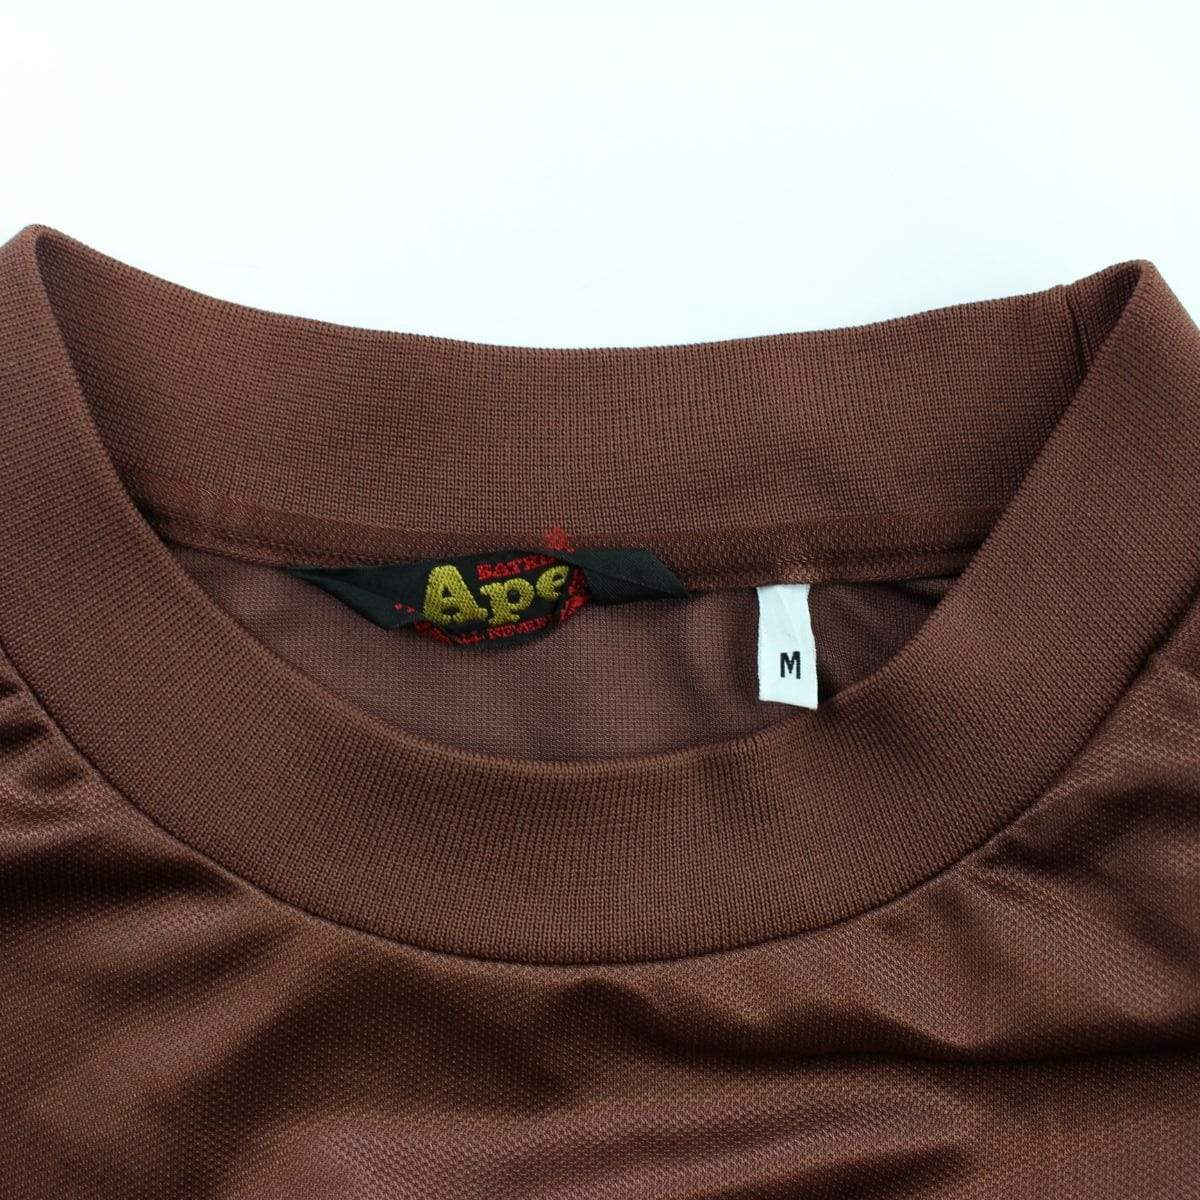 Bape Angry Face Big Ape Logo Football Jersey Brown - SaruGeneral